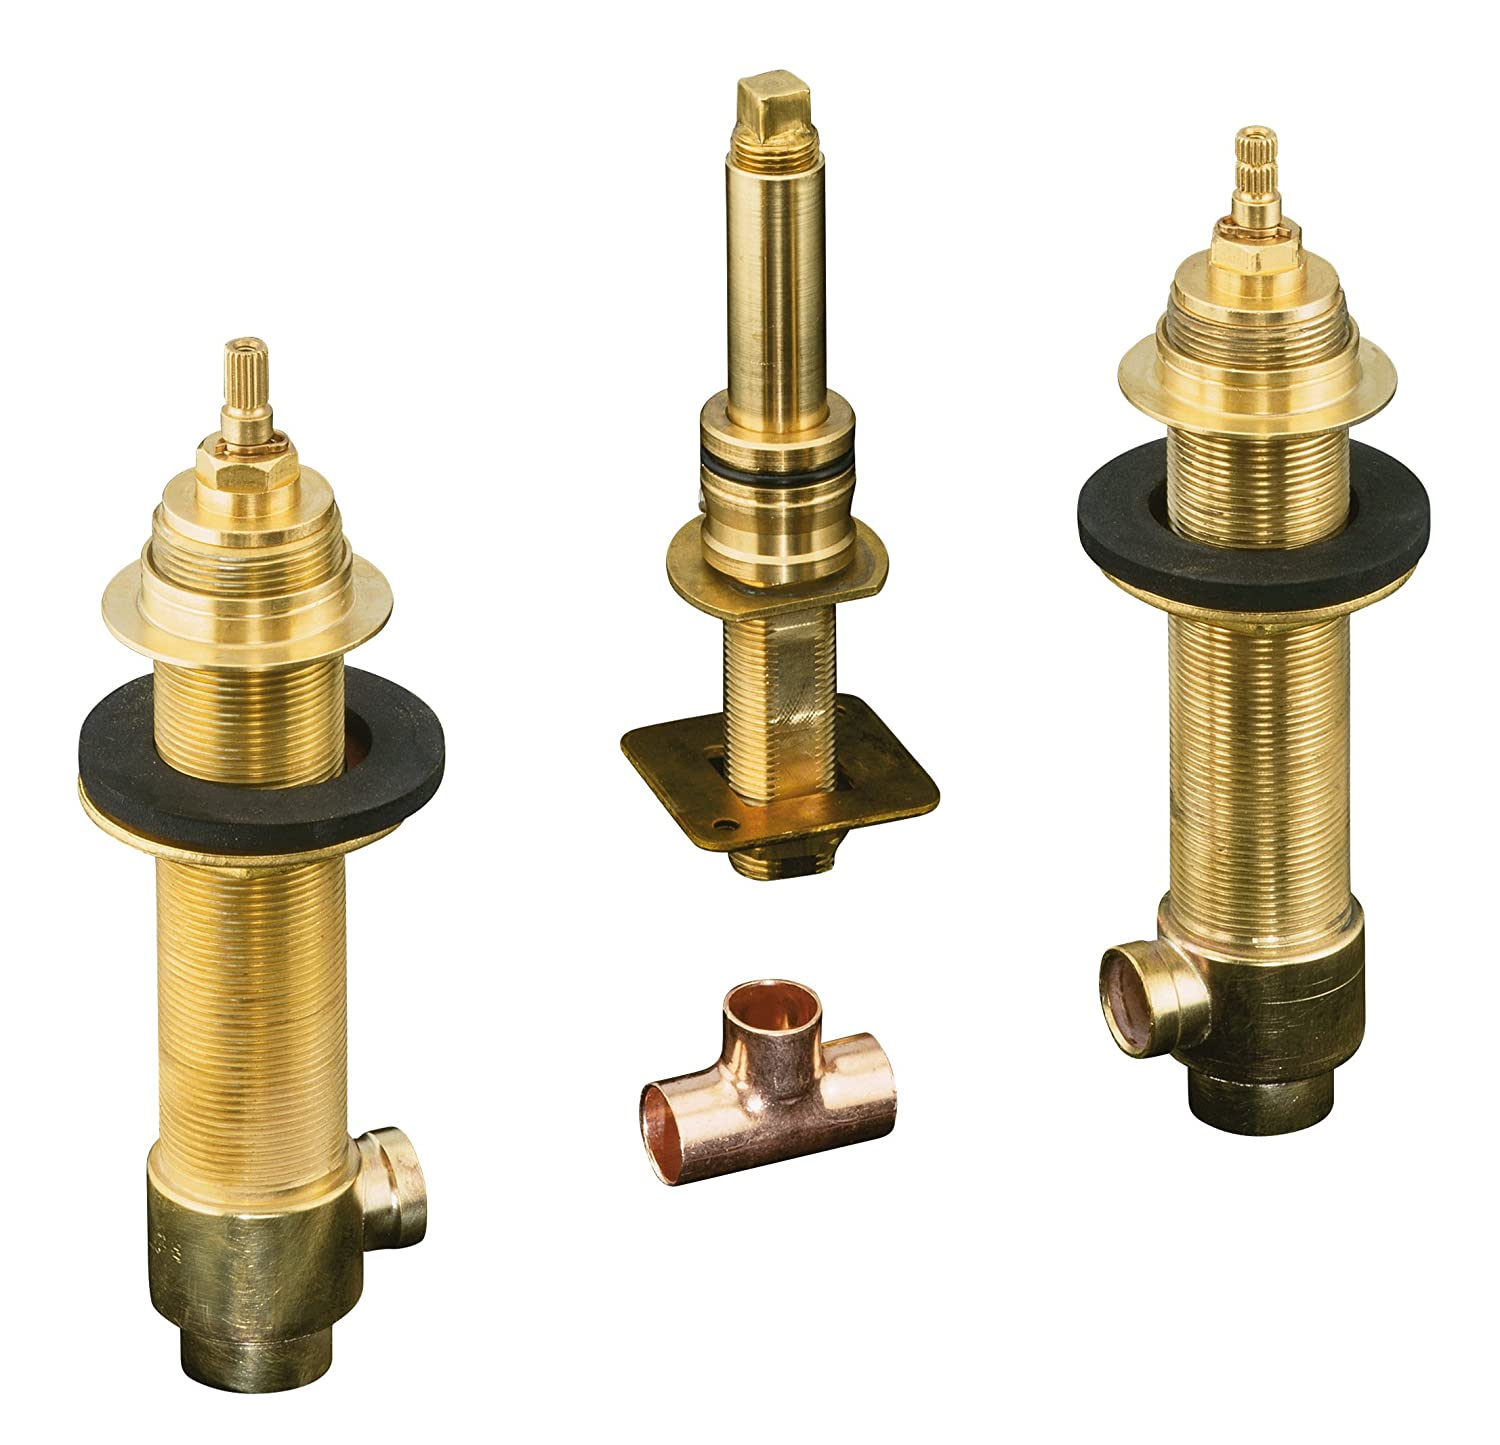 Kohler Bath Faucet Parts Bathroom Faucets Replacement New Kohler ...